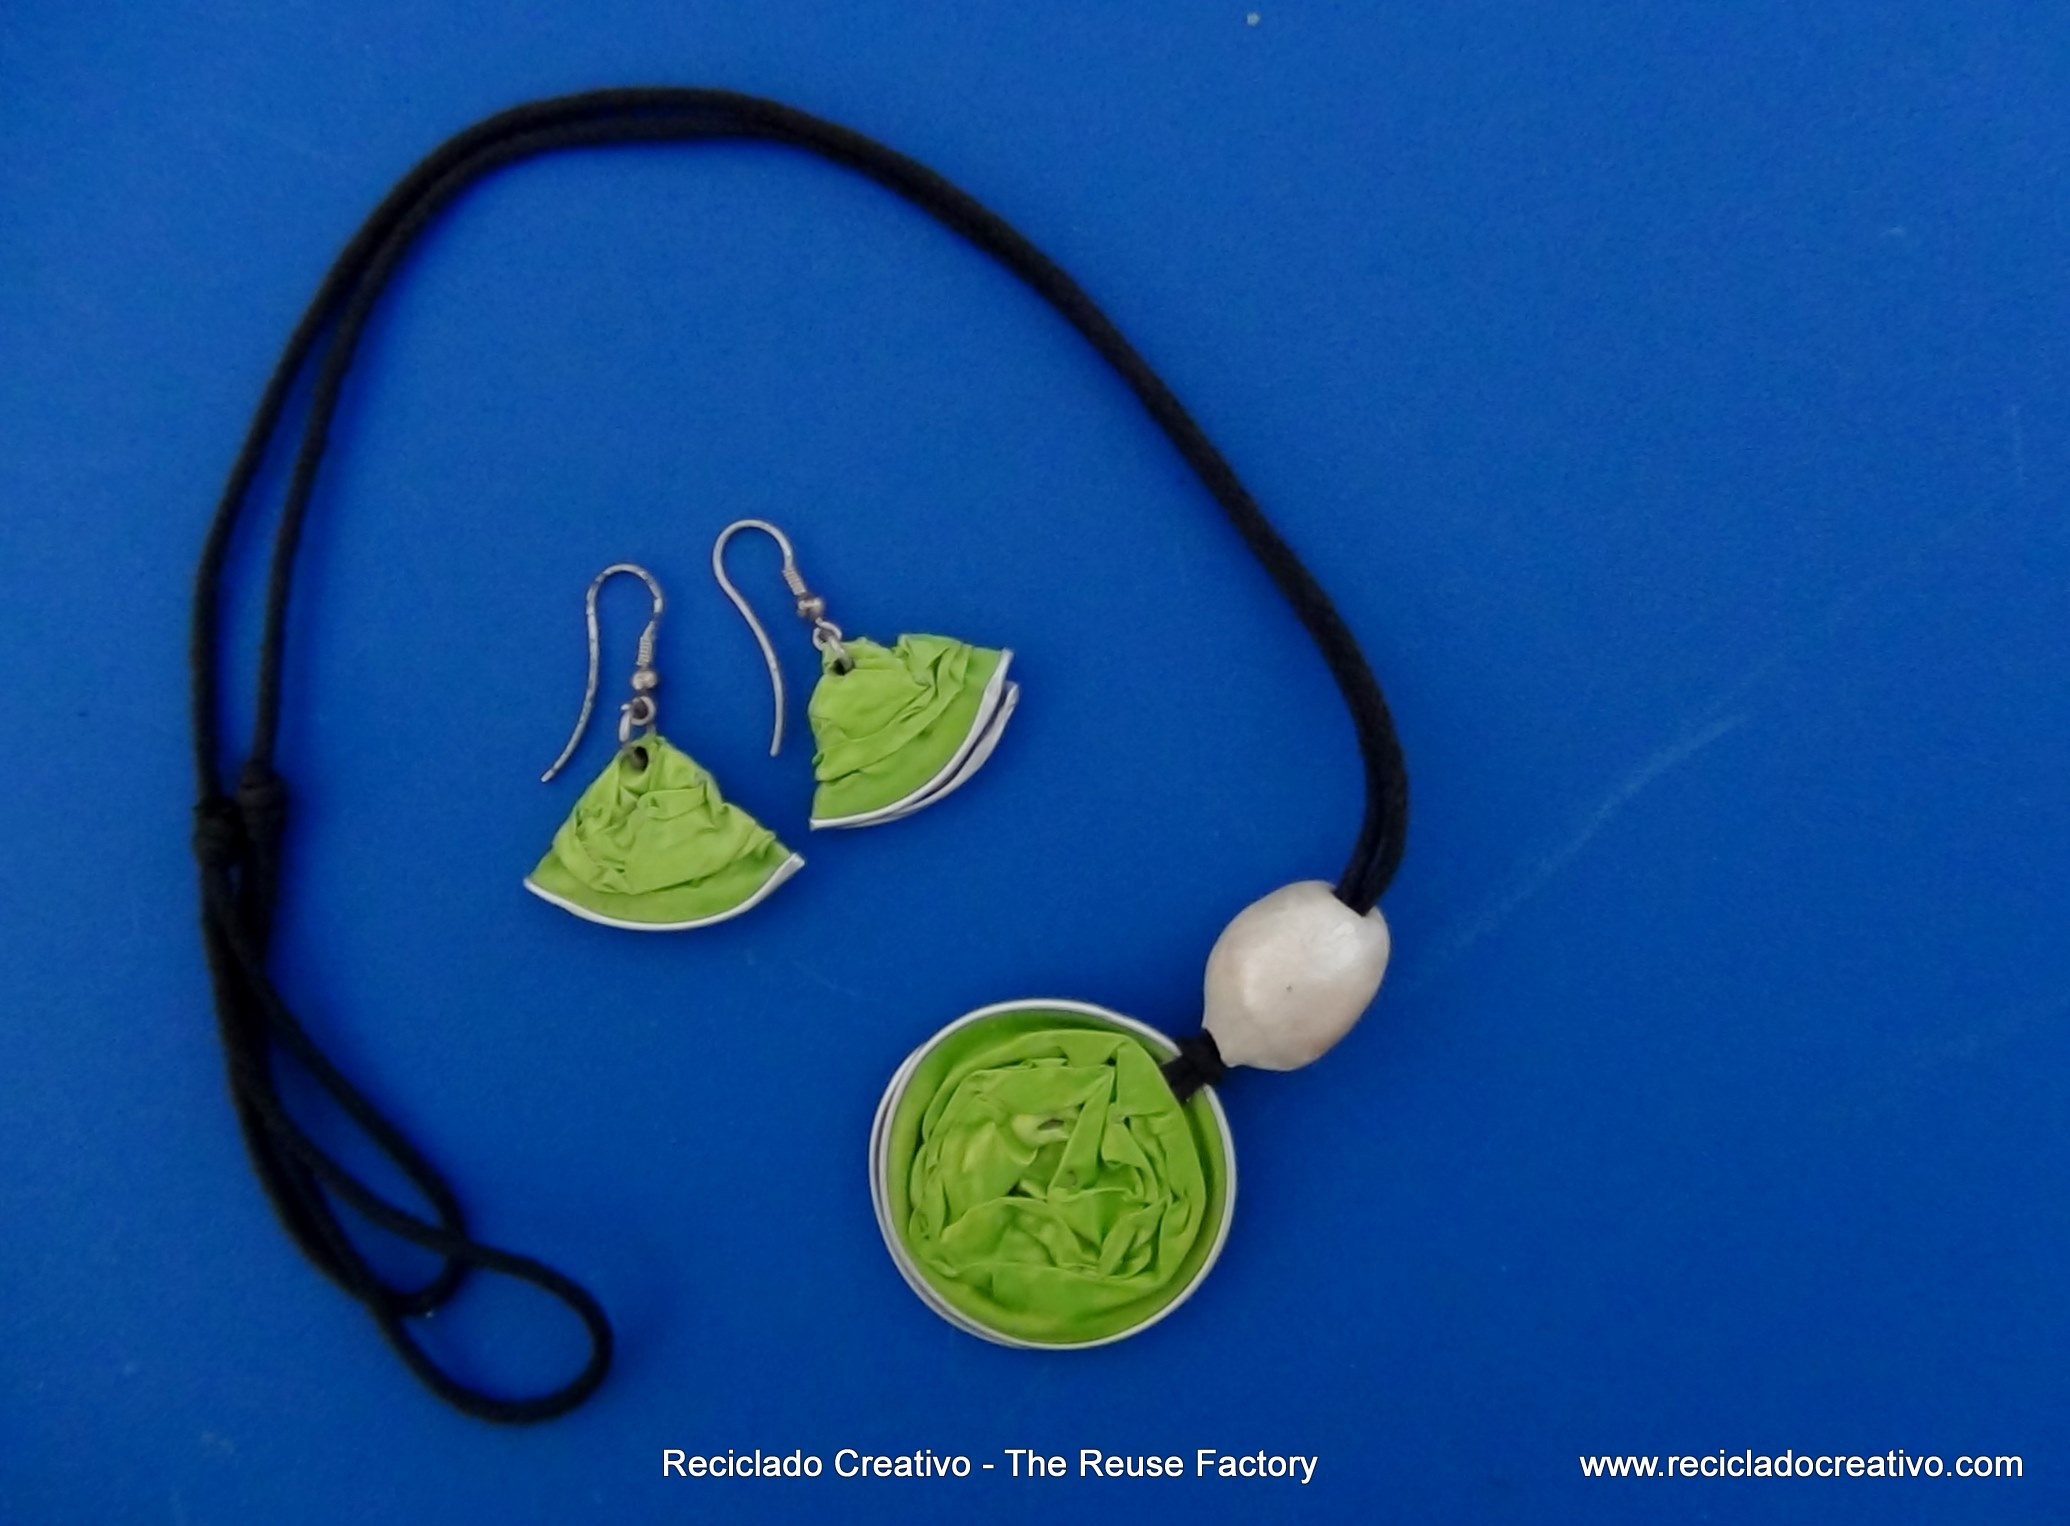 Top 50 Recycled, Reused and Upcycled, The Reuse Factory. Los + de Reciclado Creativo,  (7)